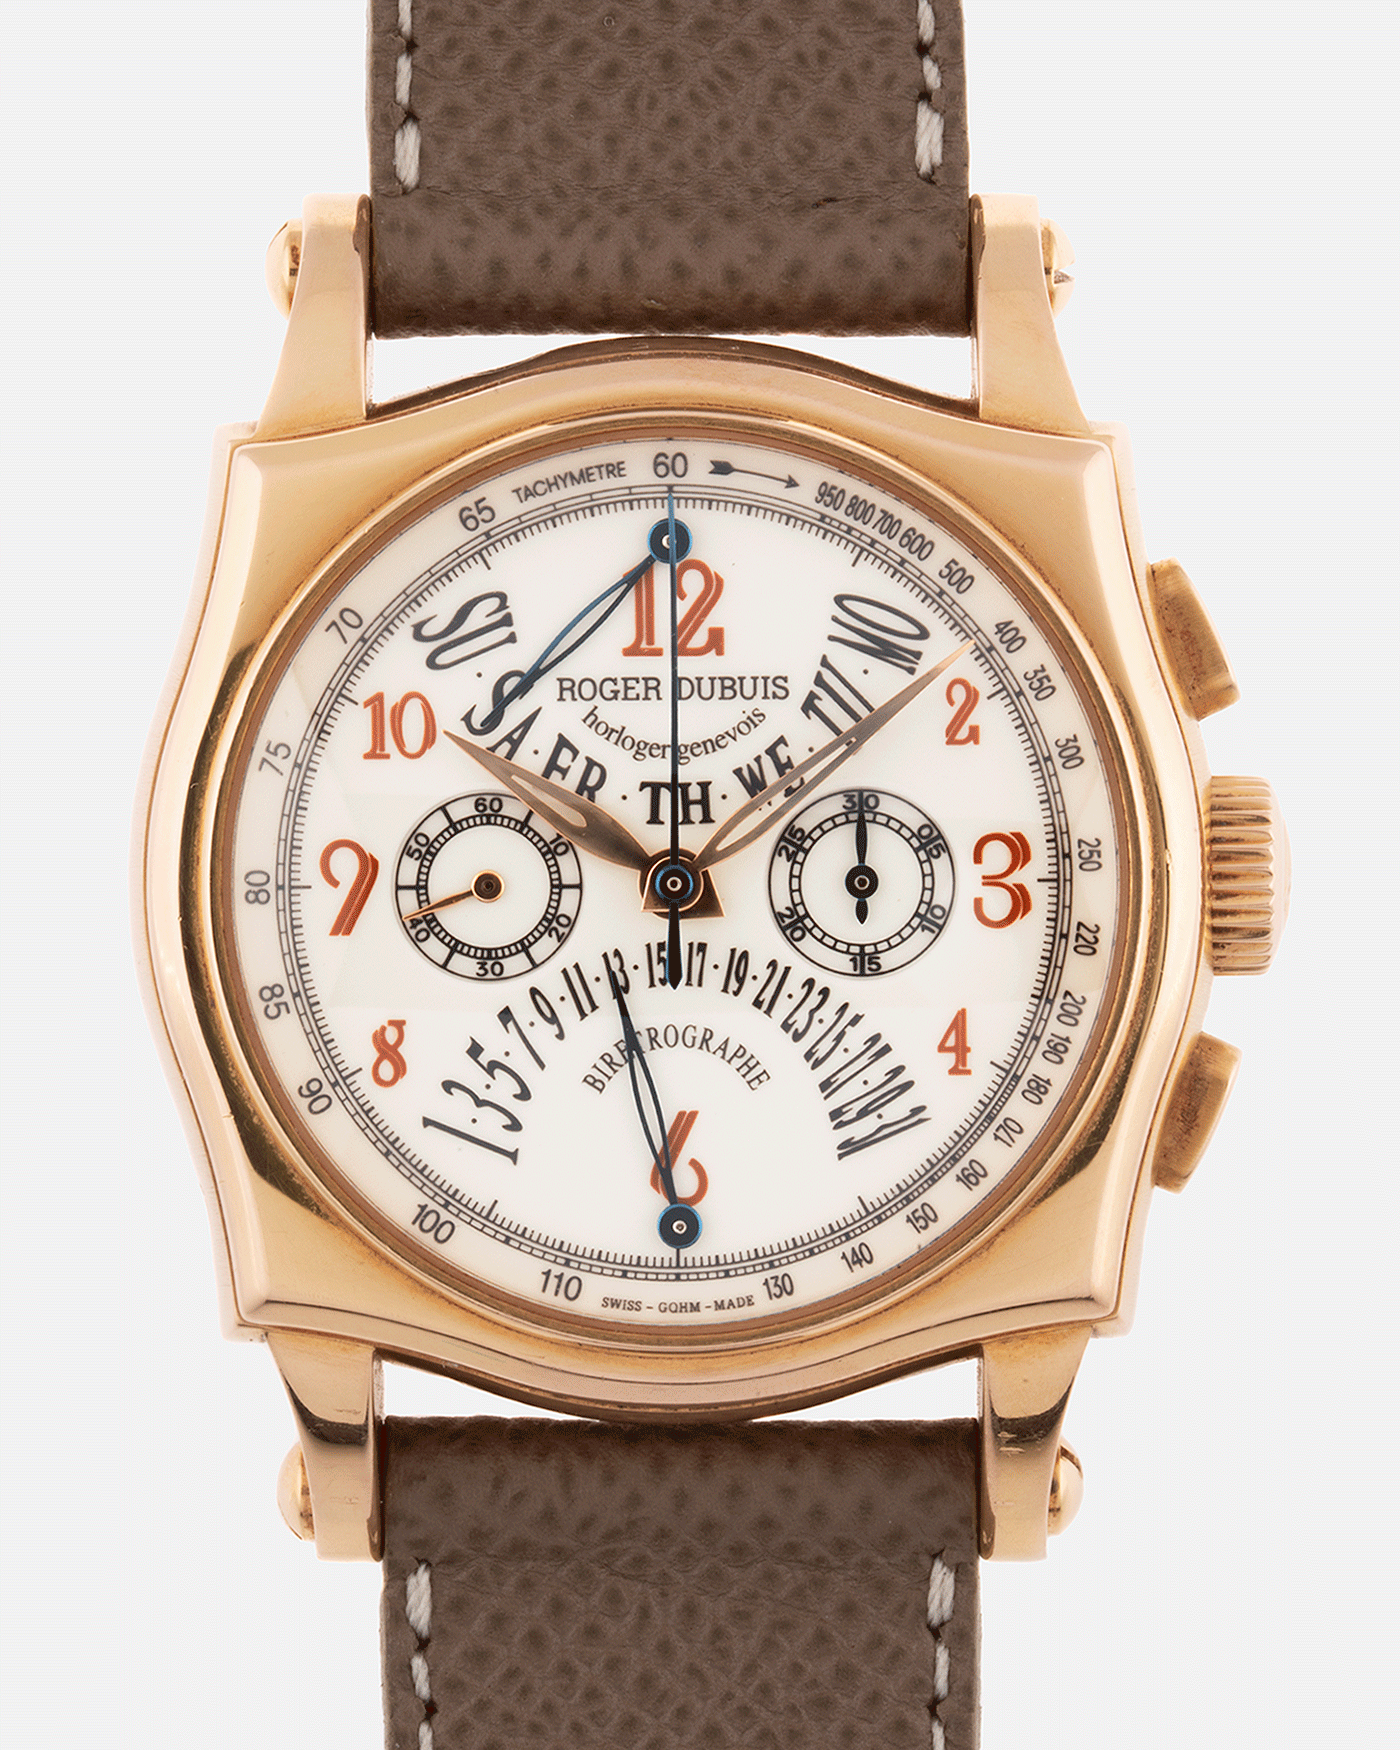 Roger Dubuis Sympathie 40 Biretrograde Chronograph Watch | S.Song Timepieces